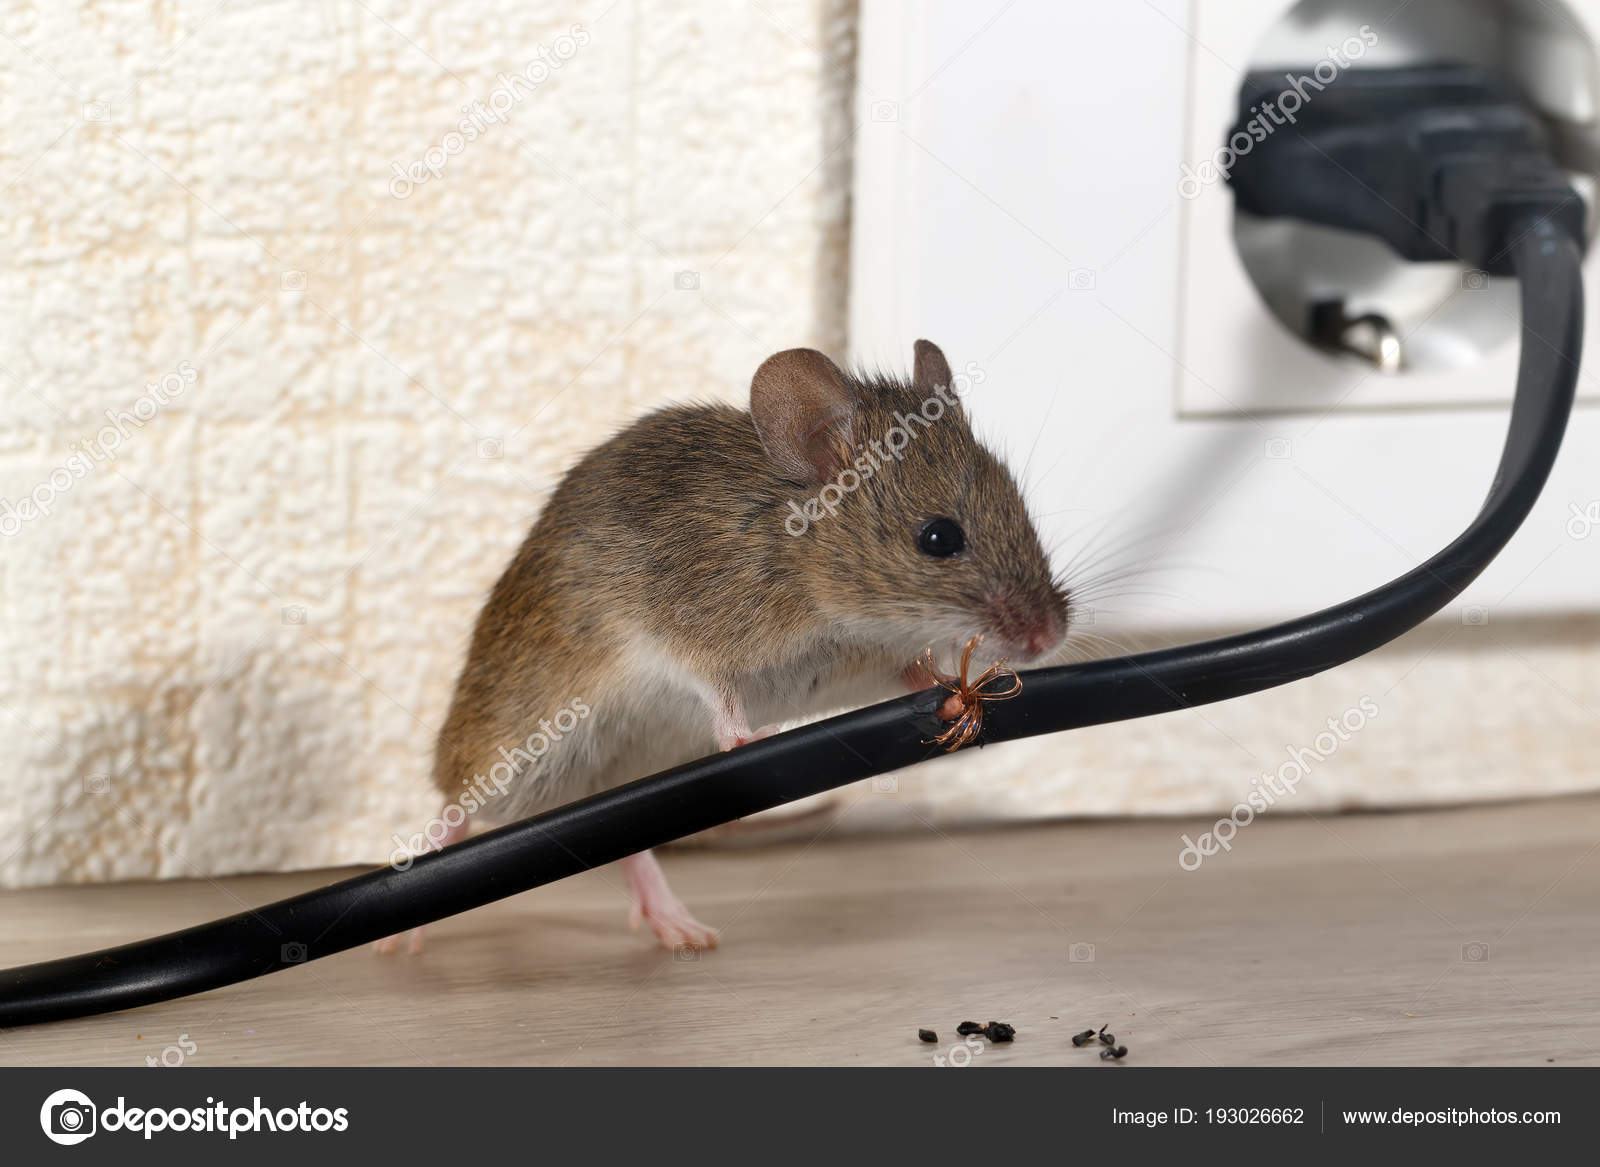 Closeup Mouse Gnaws Wire Apartment House Background Wall Electrical Wiring Inside Walls In An On The Of And Outlet High Rise Buildings Fight With Mice